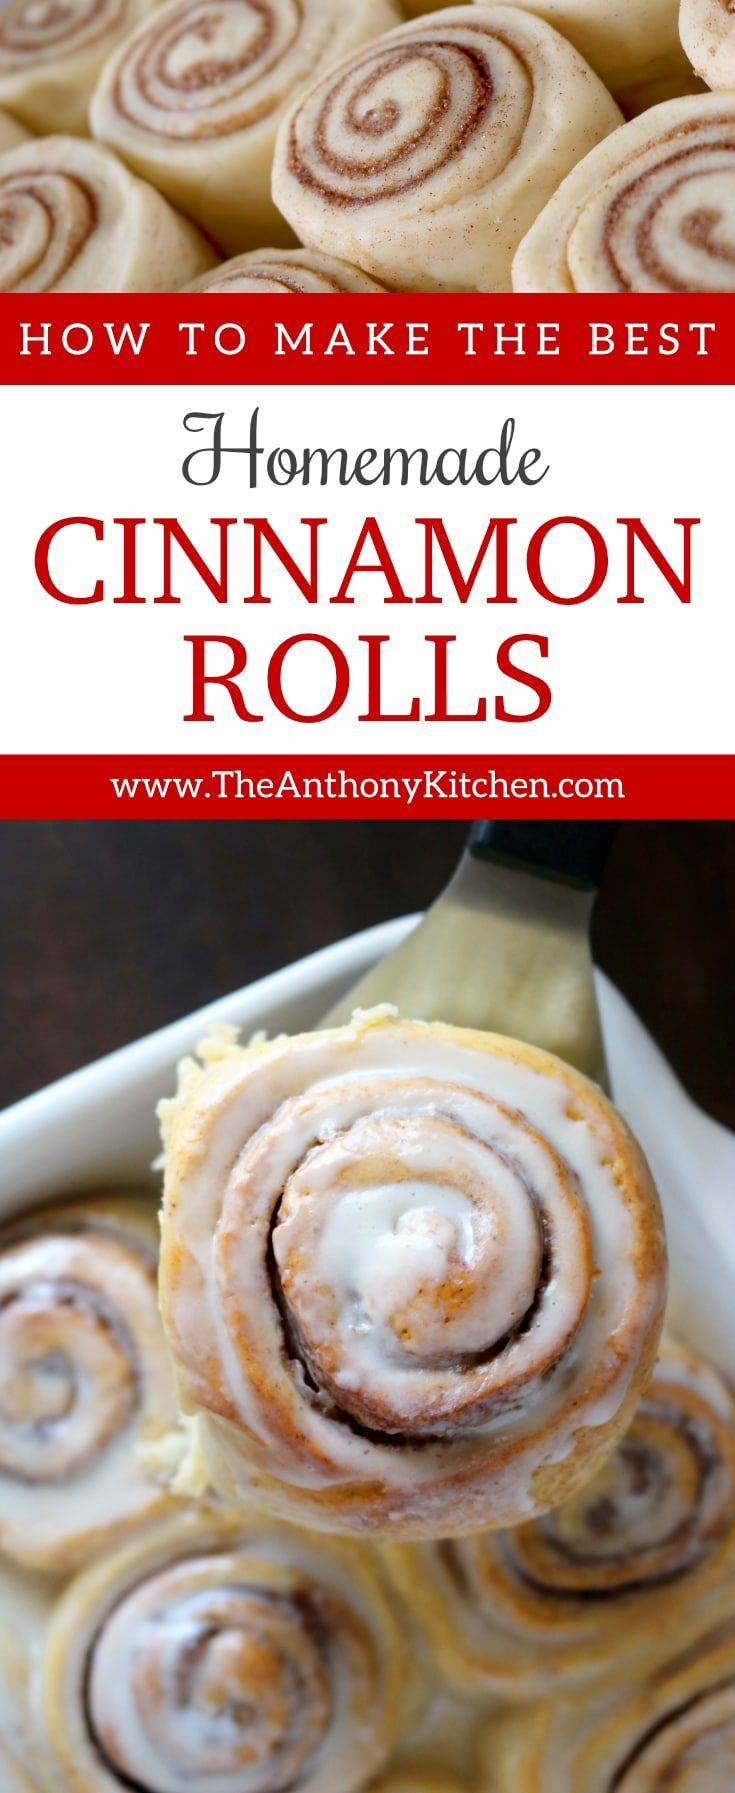 Brunch Recipes   HOMEMADE CINNAMON ROLLS   How to make the best homemade cinnamon rolls: A step-by-step tutorial (with pictures!) showing you everything you need to know for perfect made-from-scratch cinnamon rolls. #homemadecinnamonrolls #cinnamonrolls #breakfast #brunch